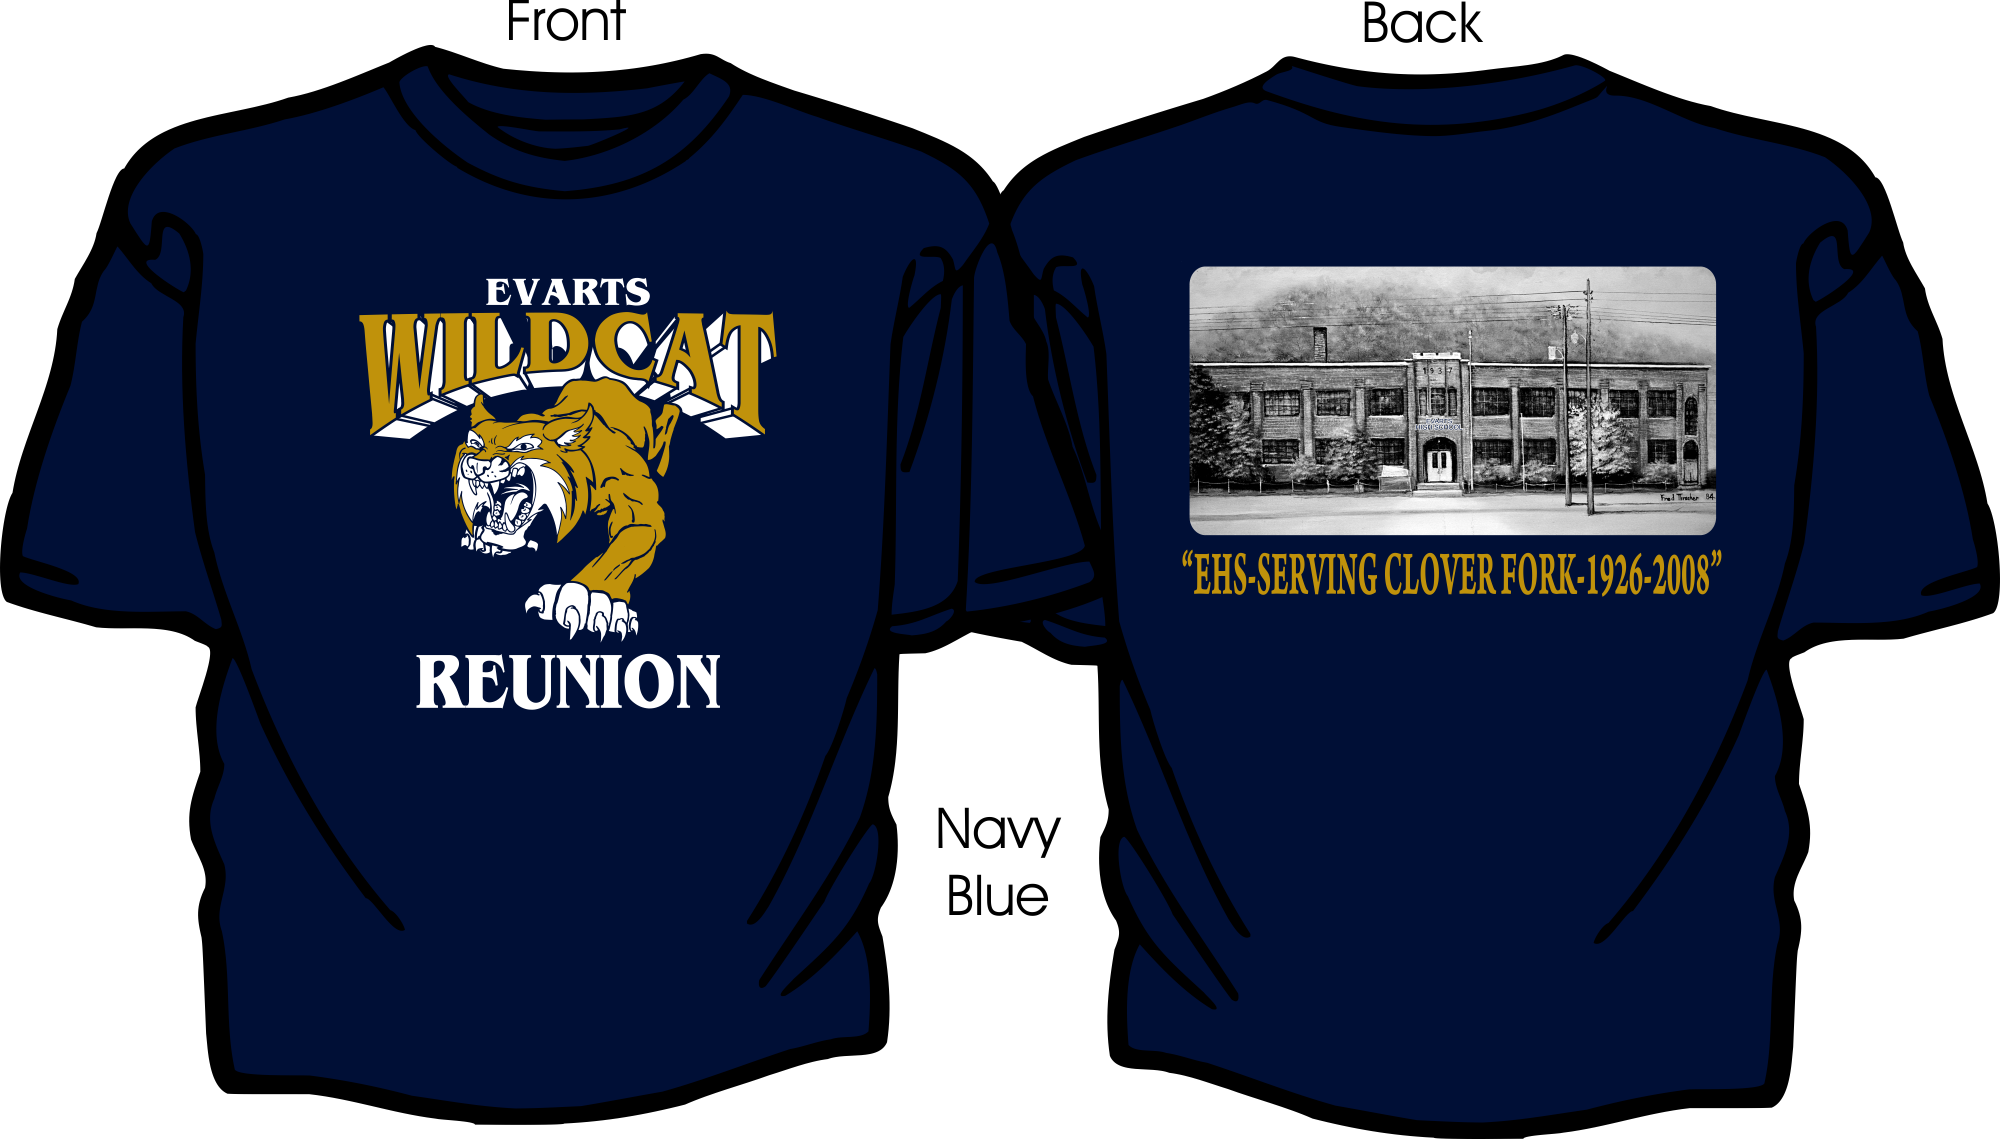 Wildcats Reunion Short Sleeved Shirts.png